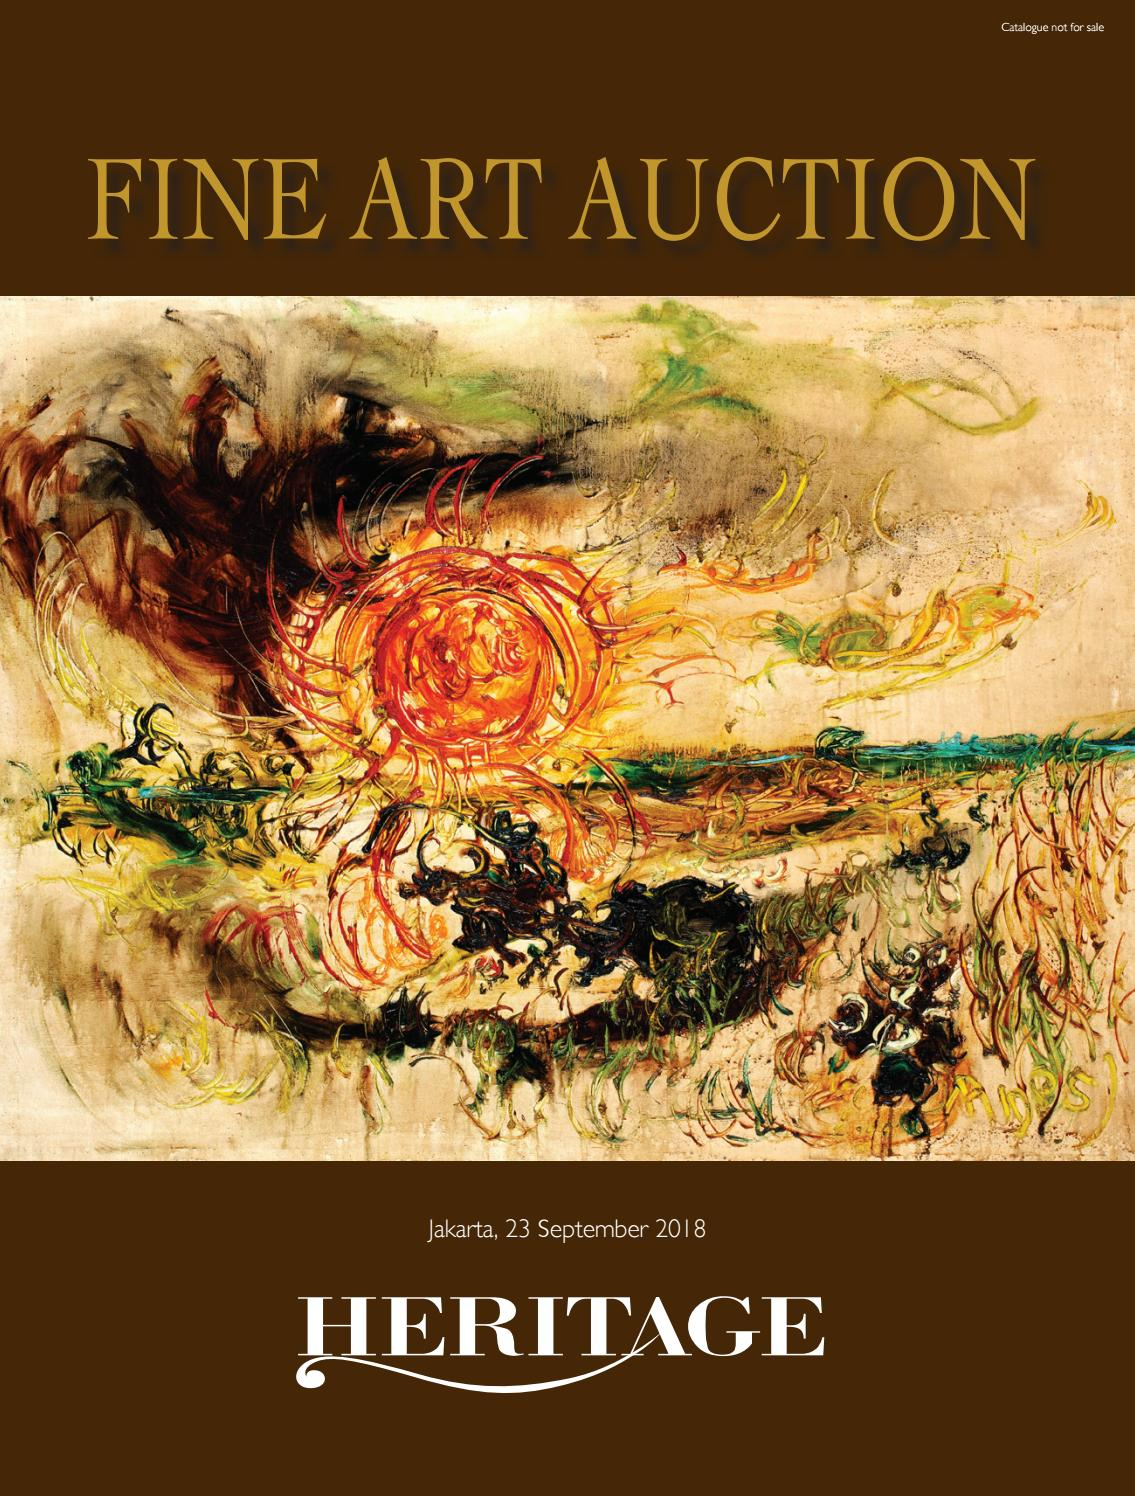 Heritage Fine Art Auction By Masterpiece Auction House Indonesia Singapore Malaysia Issuu